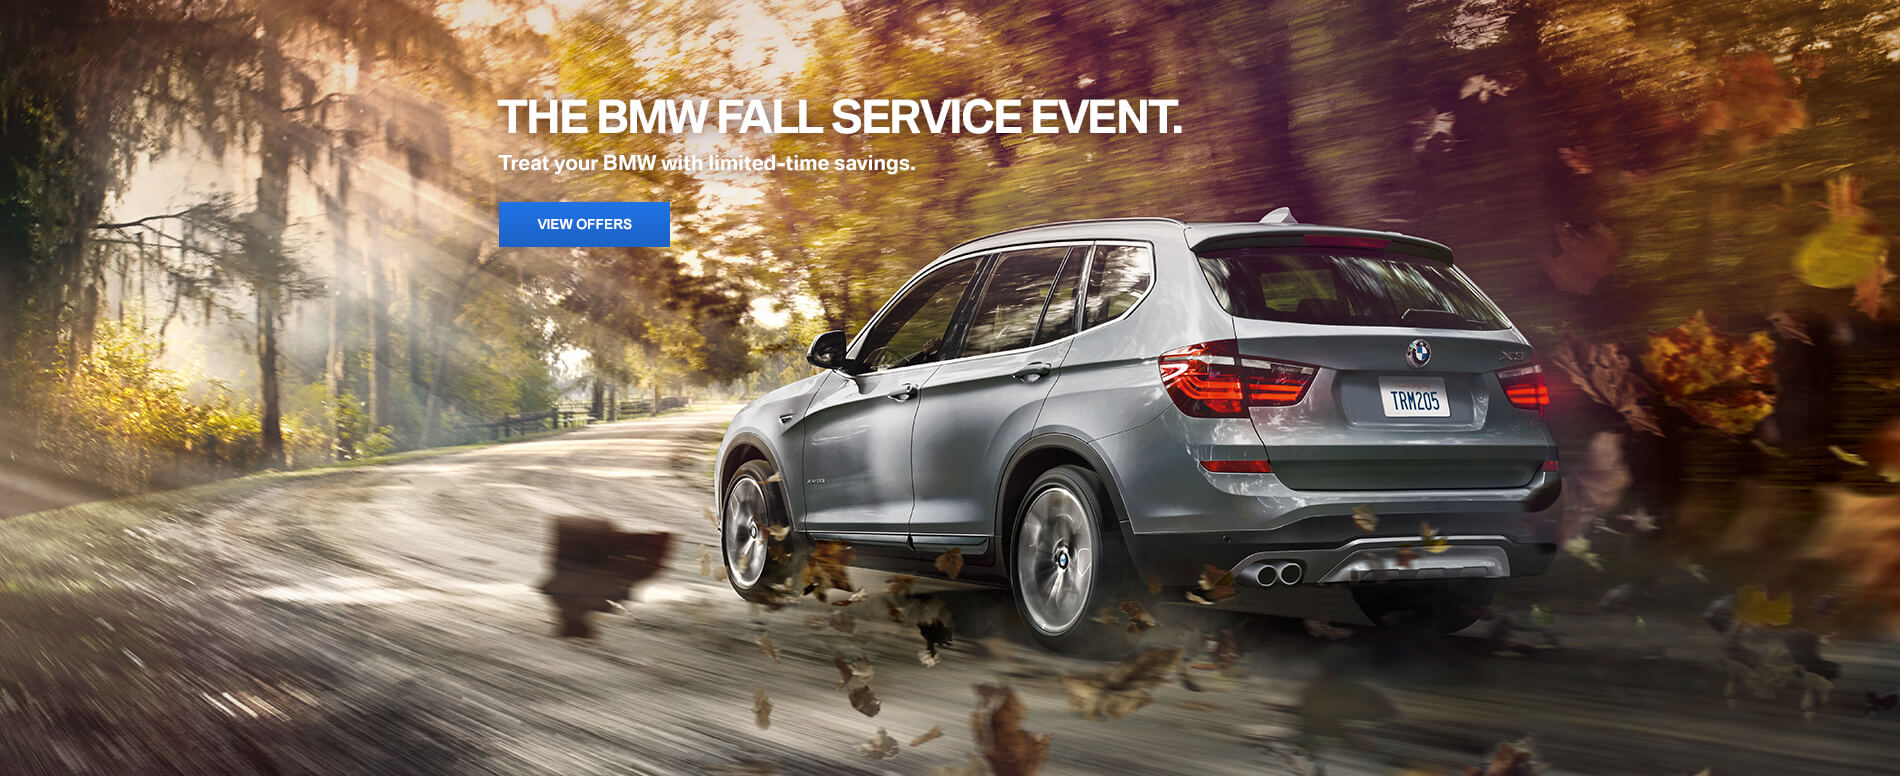 BMW Fall Service Event